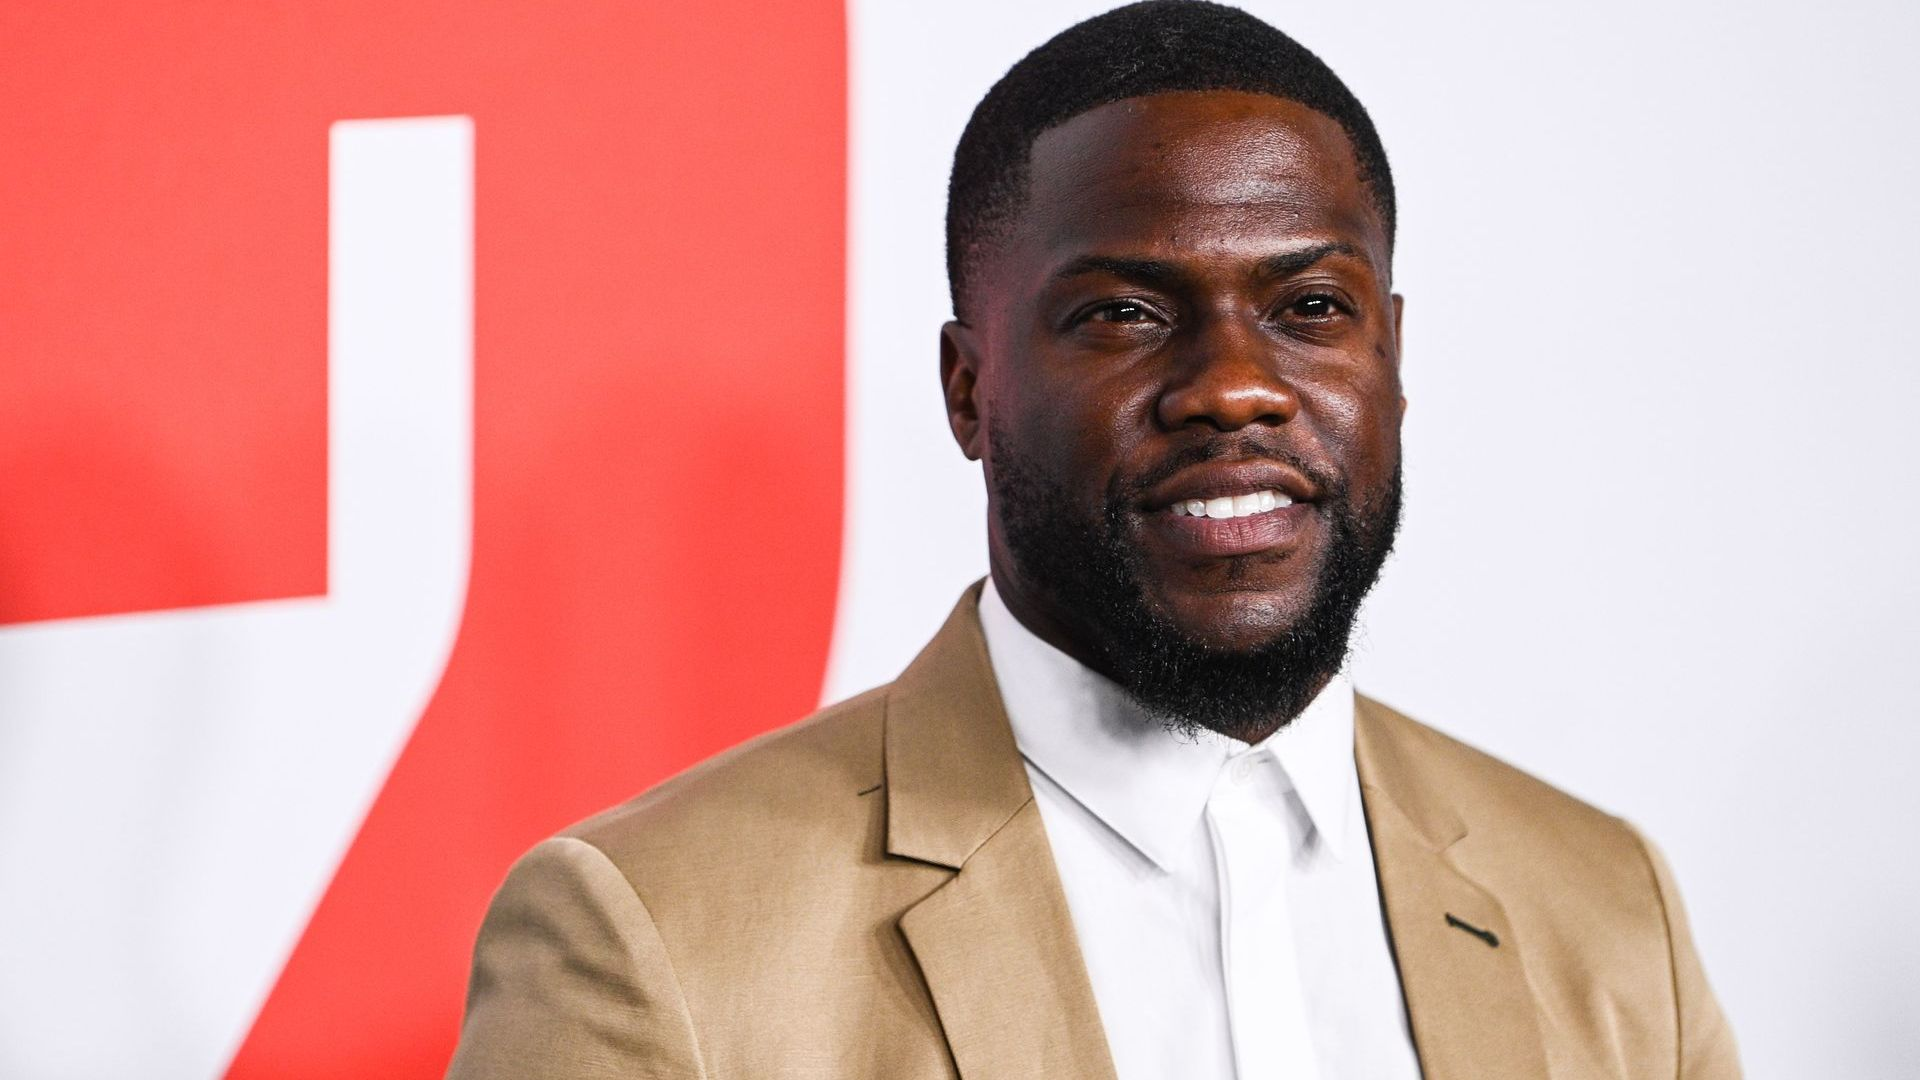 Bishop Sycamore Docuseries Coming From Kevin Hart's HartBeat Productions, Complex Networks, and More